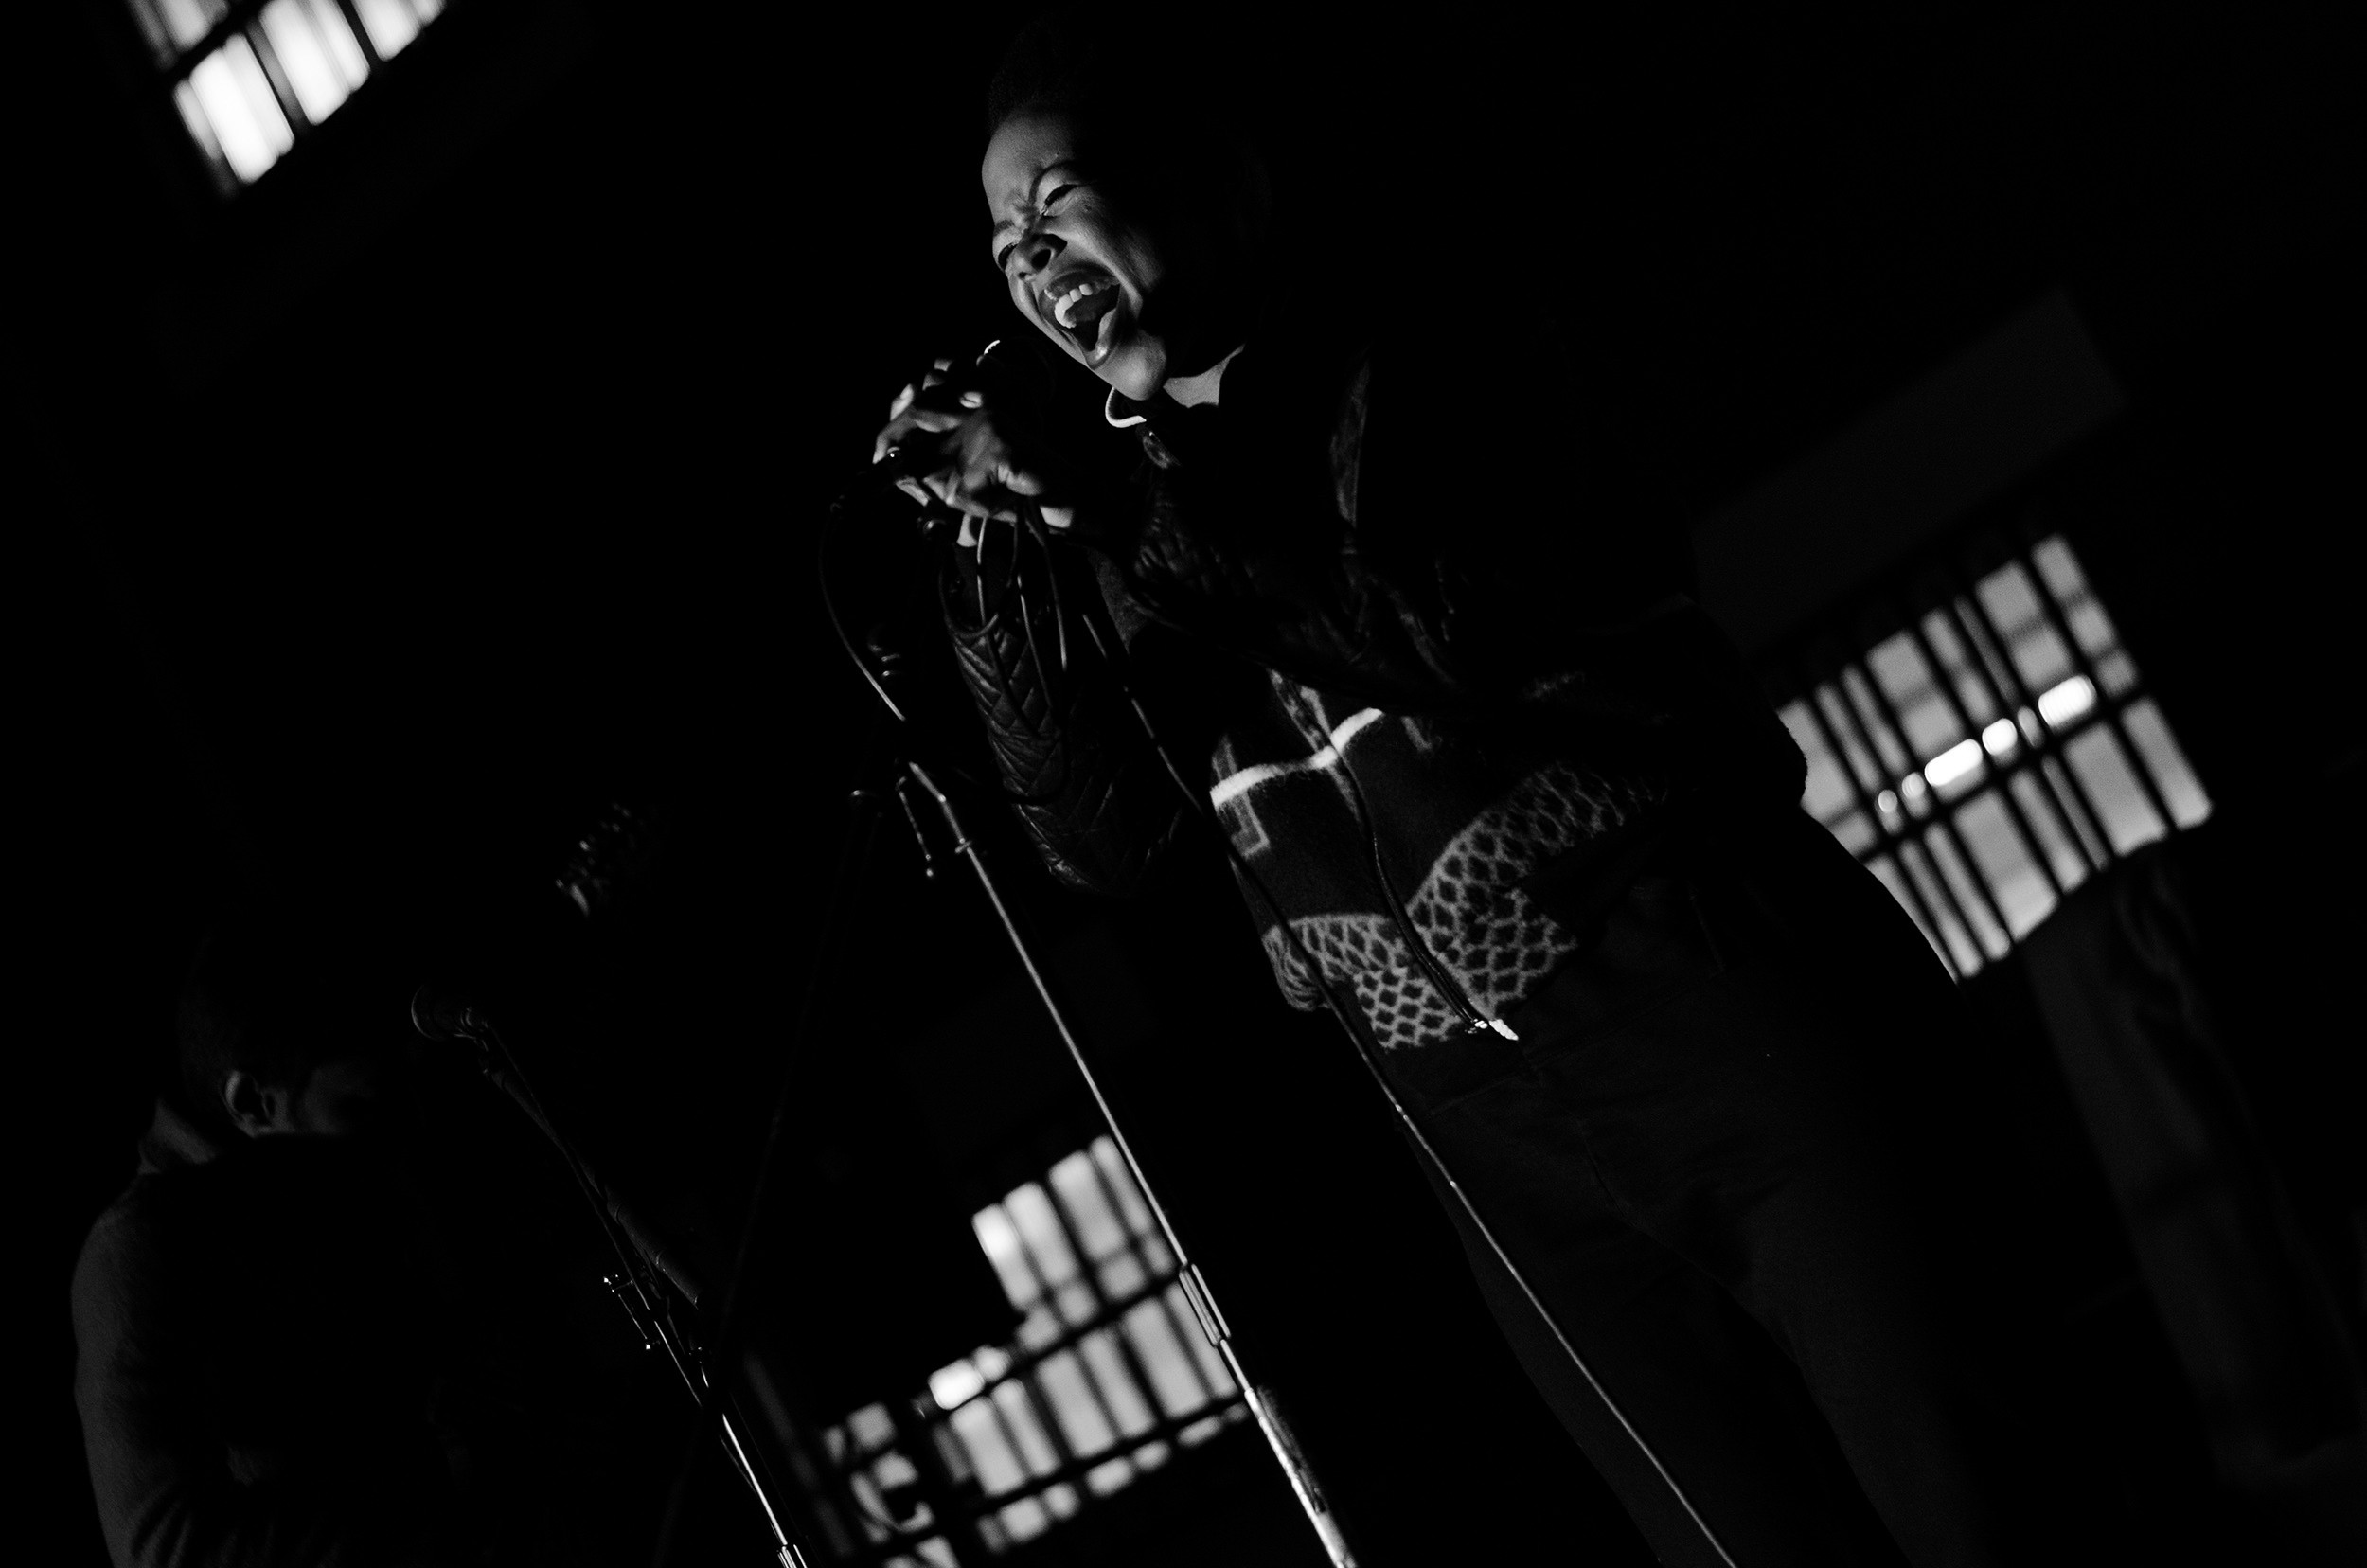 14 June 2014: Nosisi Ngakane performing as a guest singer with The Brother Moves On at the Basha Uhuru Freedom Festival at Constitution Hill in Joburg.